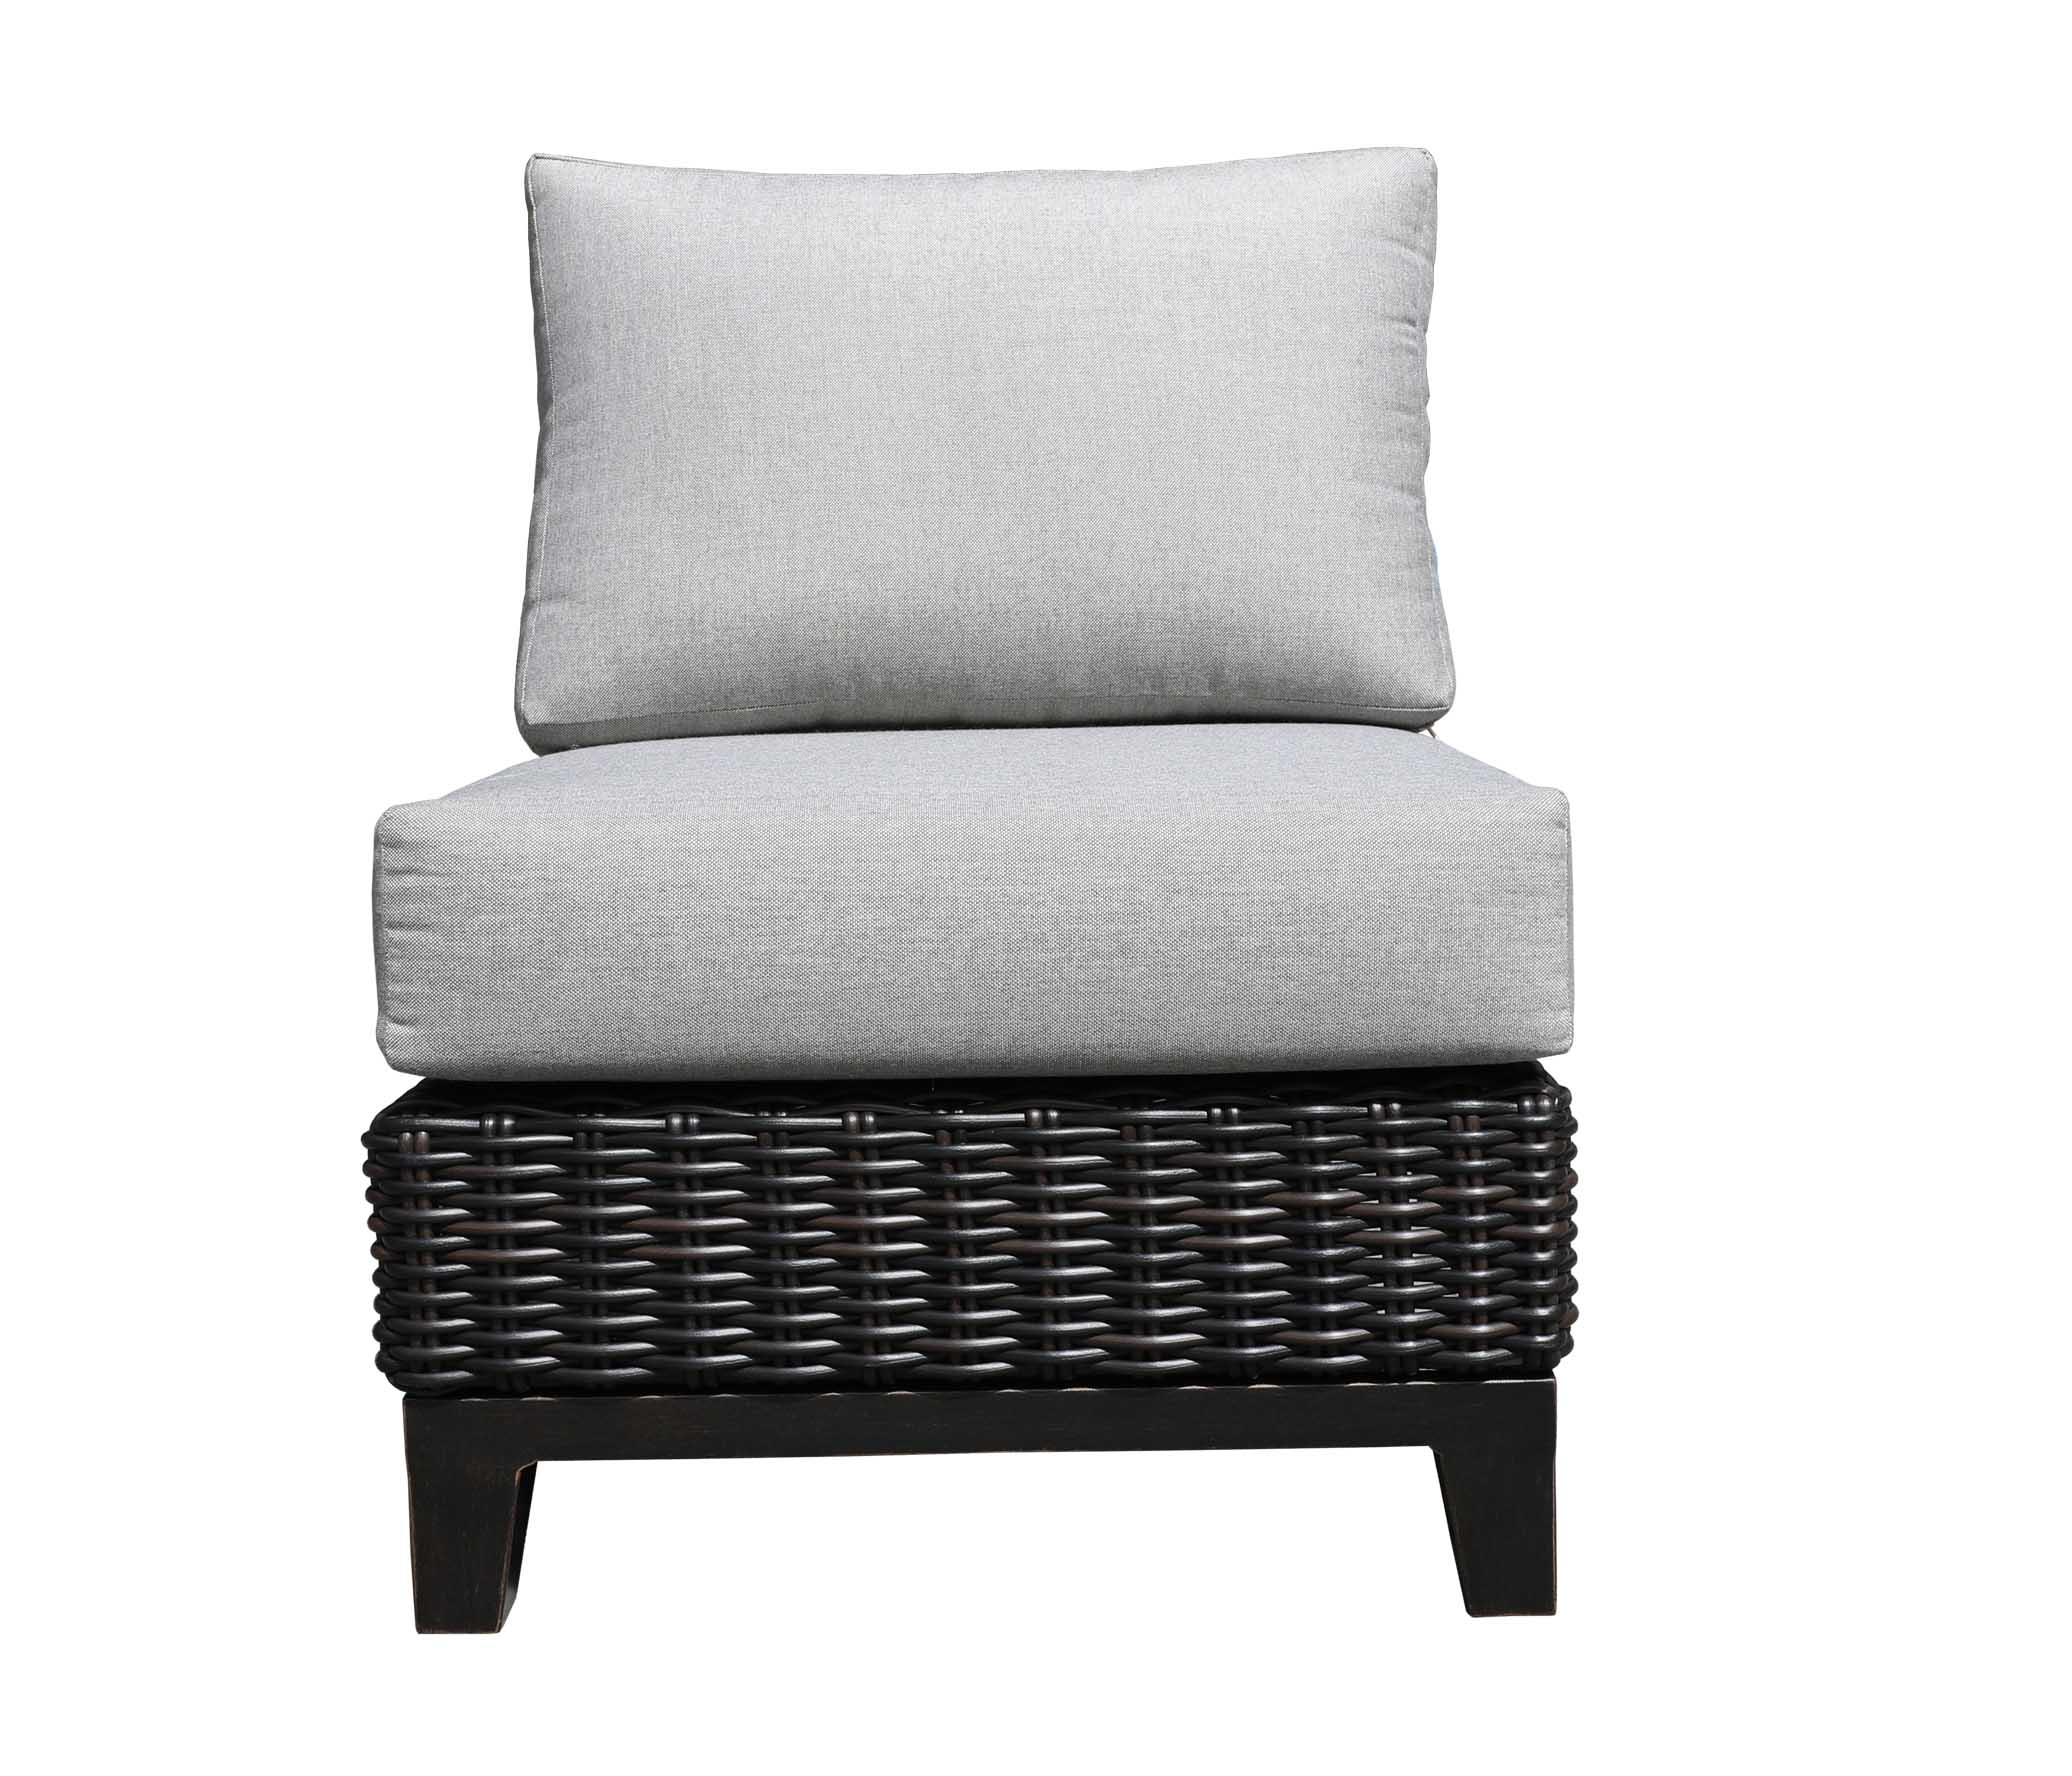 Oakville Outdoor Furniture Aubrey Slipper Chair 9444 Patio Furniture Wicker